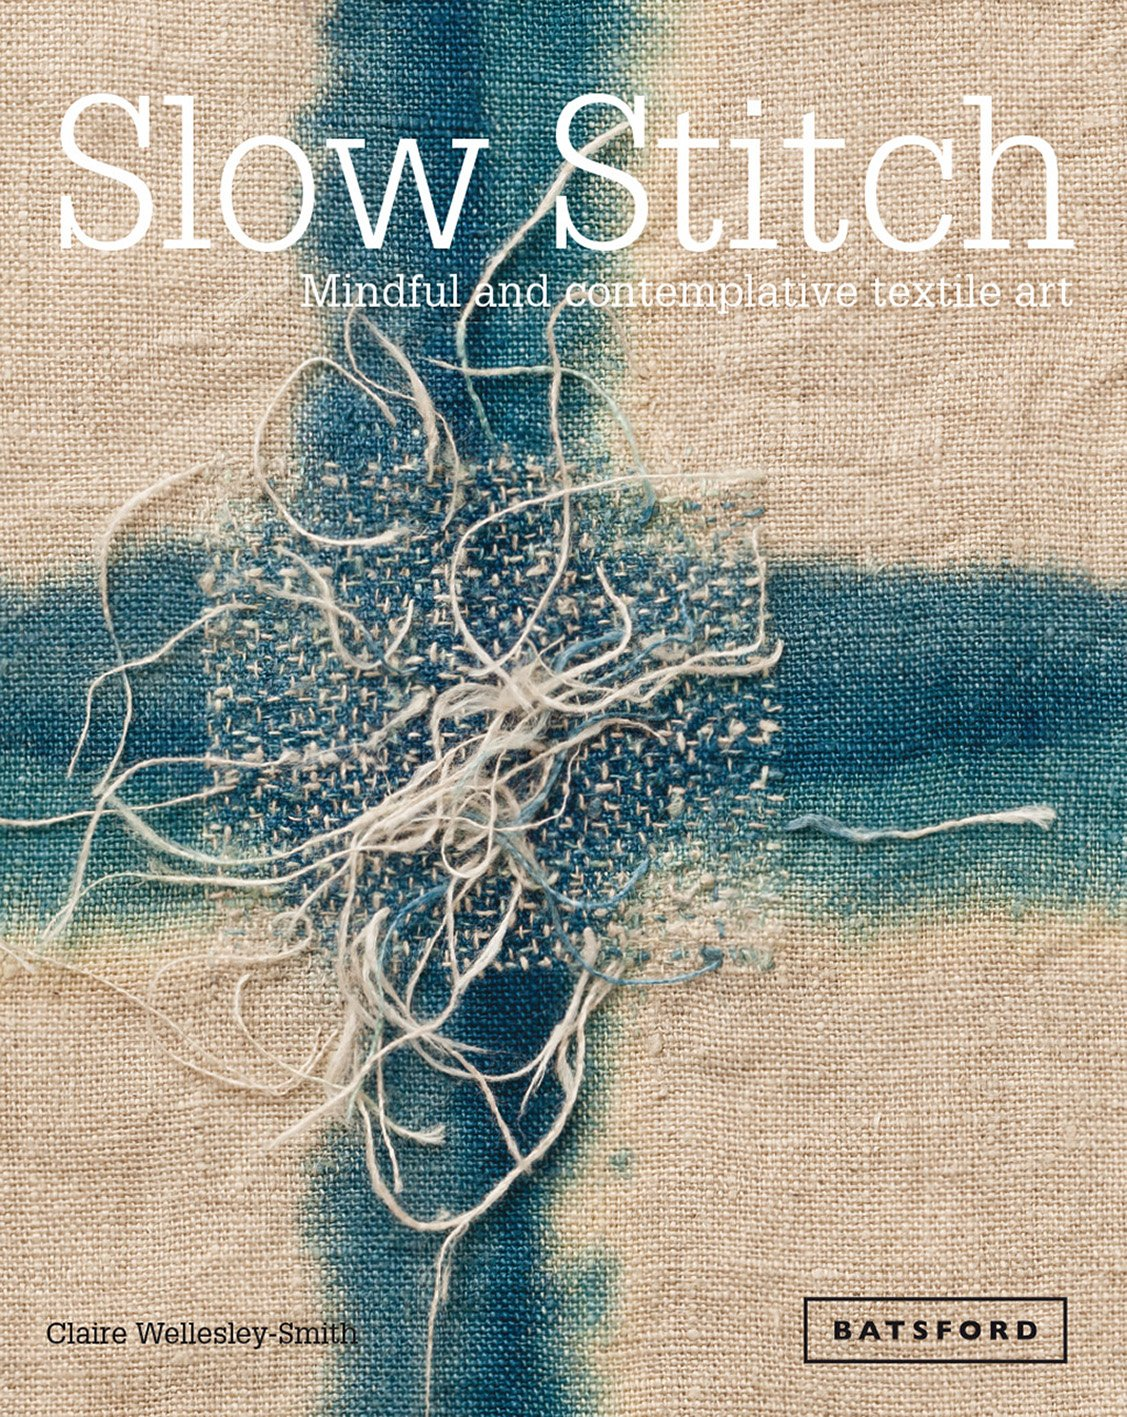 Slow Stitch: Mindful and Contemplative Textile Art: Amazon.co.uk ...